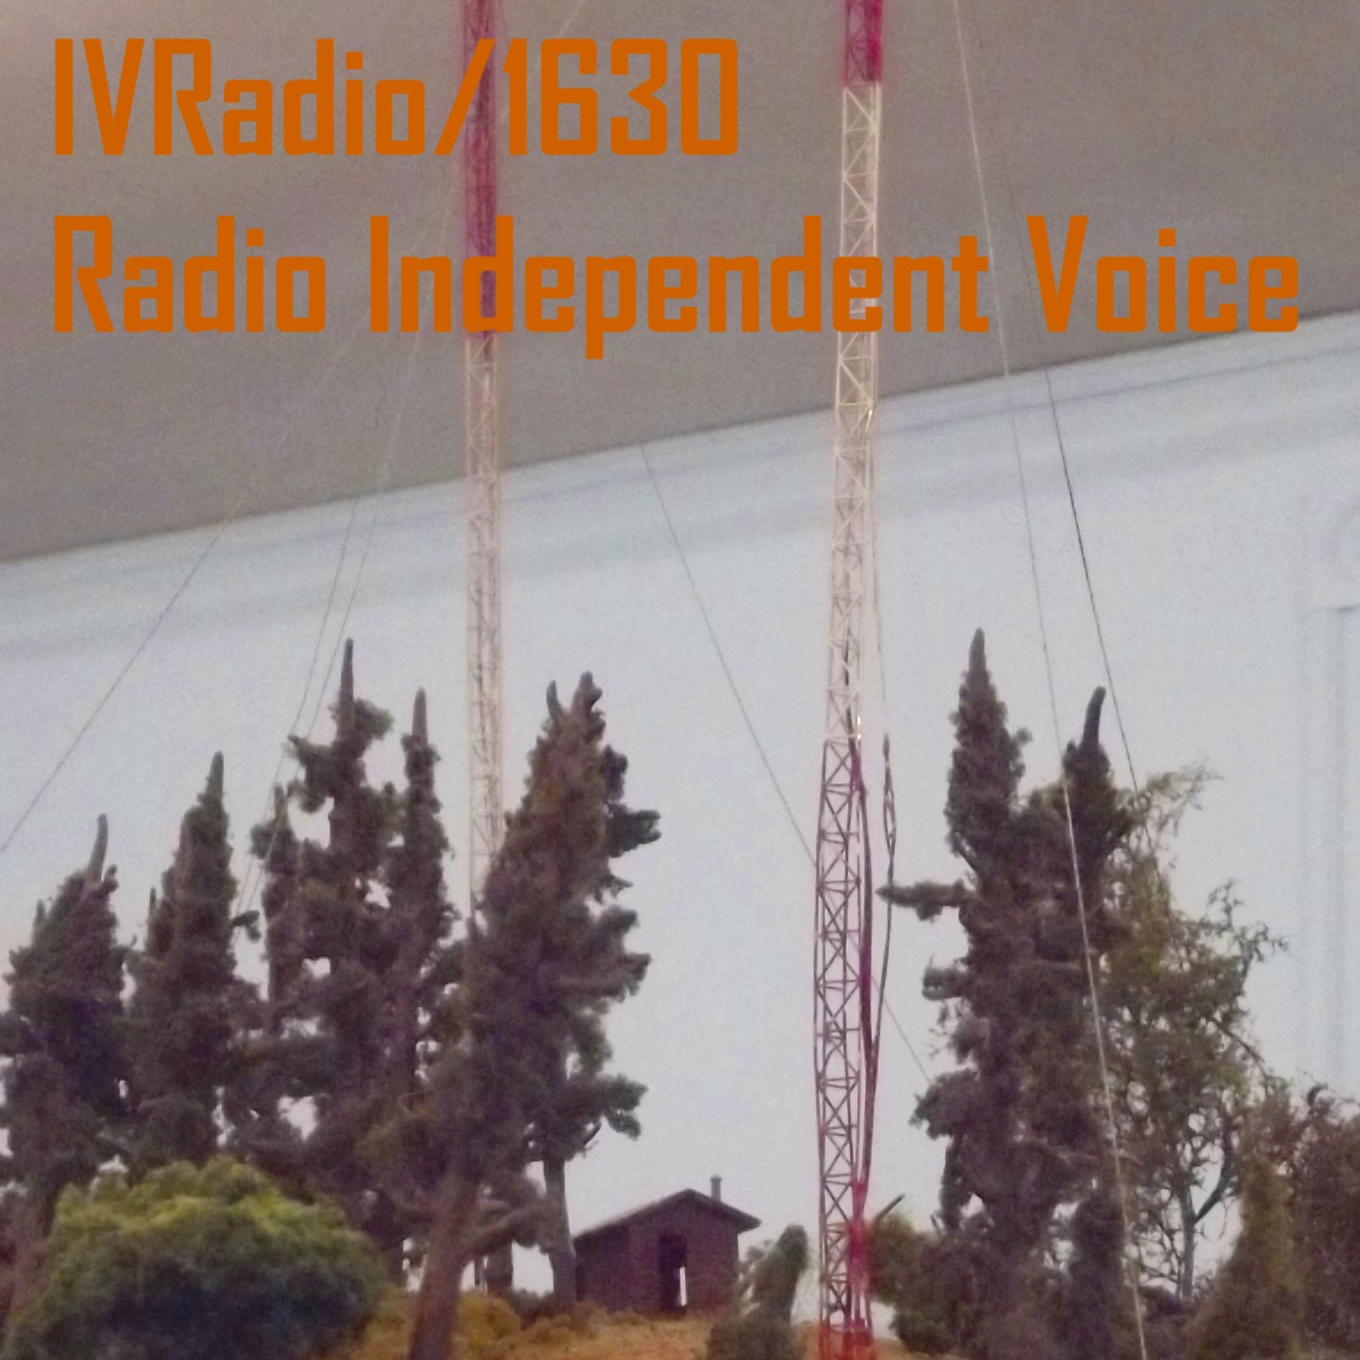 Radio Independent Voice